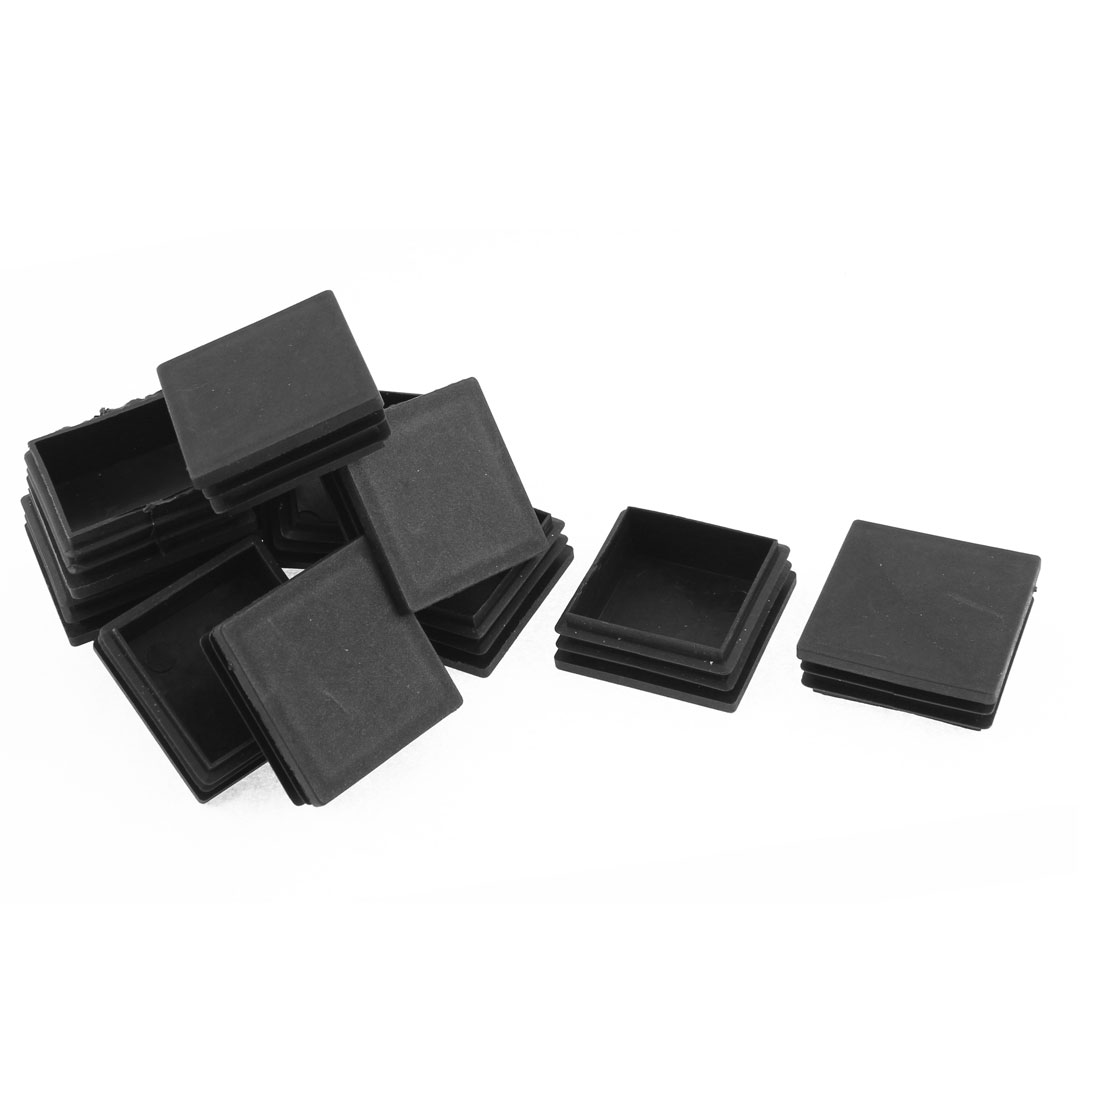 50mm x 50mm Plastic Square Tubing Tube Inserts End Blanking Cover Caps Black 12 Pcs